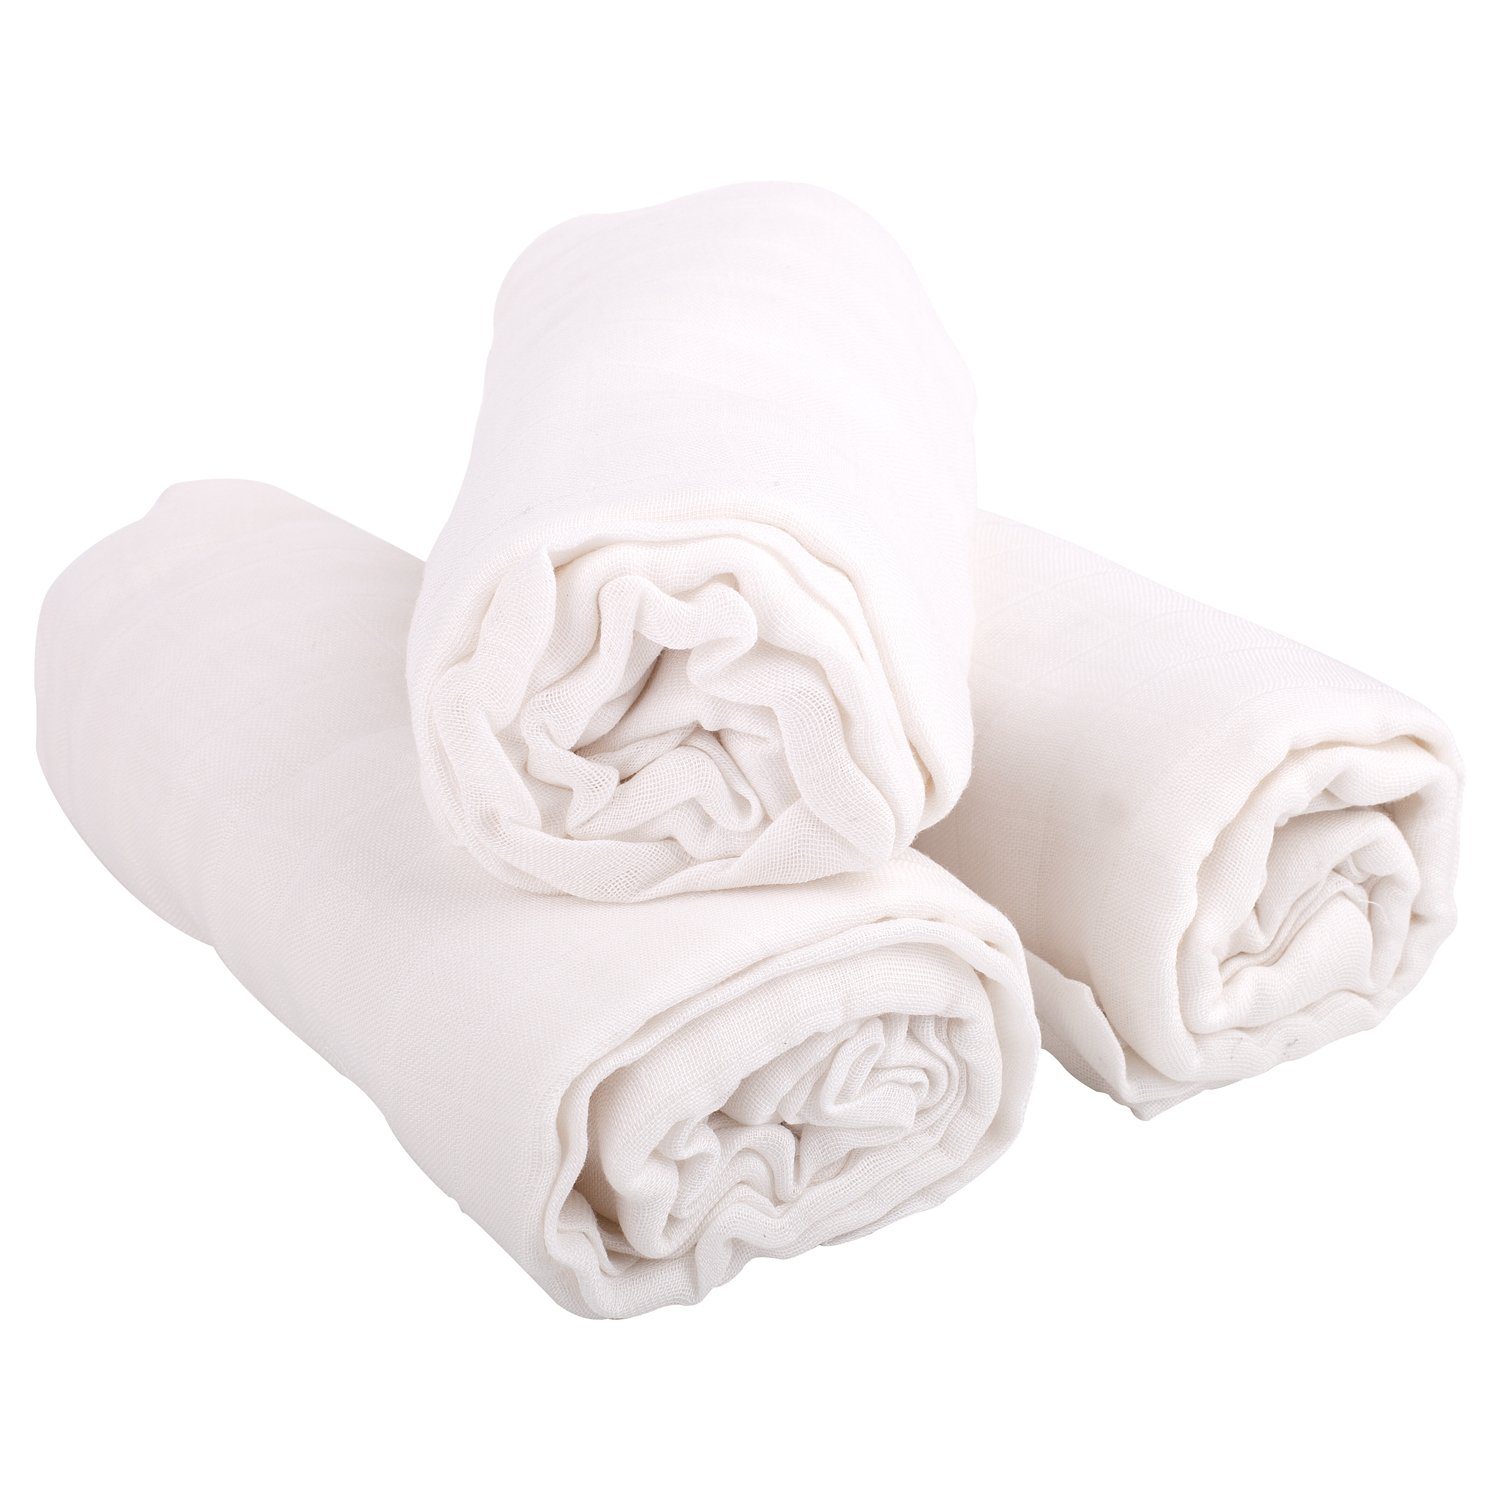 "WILD SOWN Premium Muslin Swaddle Blankets (3 Pack) - 100% Organic Lightweight Super Soft Bamboo Muslin Blanket - Ultimate Comfort Baby Sleep Essential, 47"" x 47"" (White)"